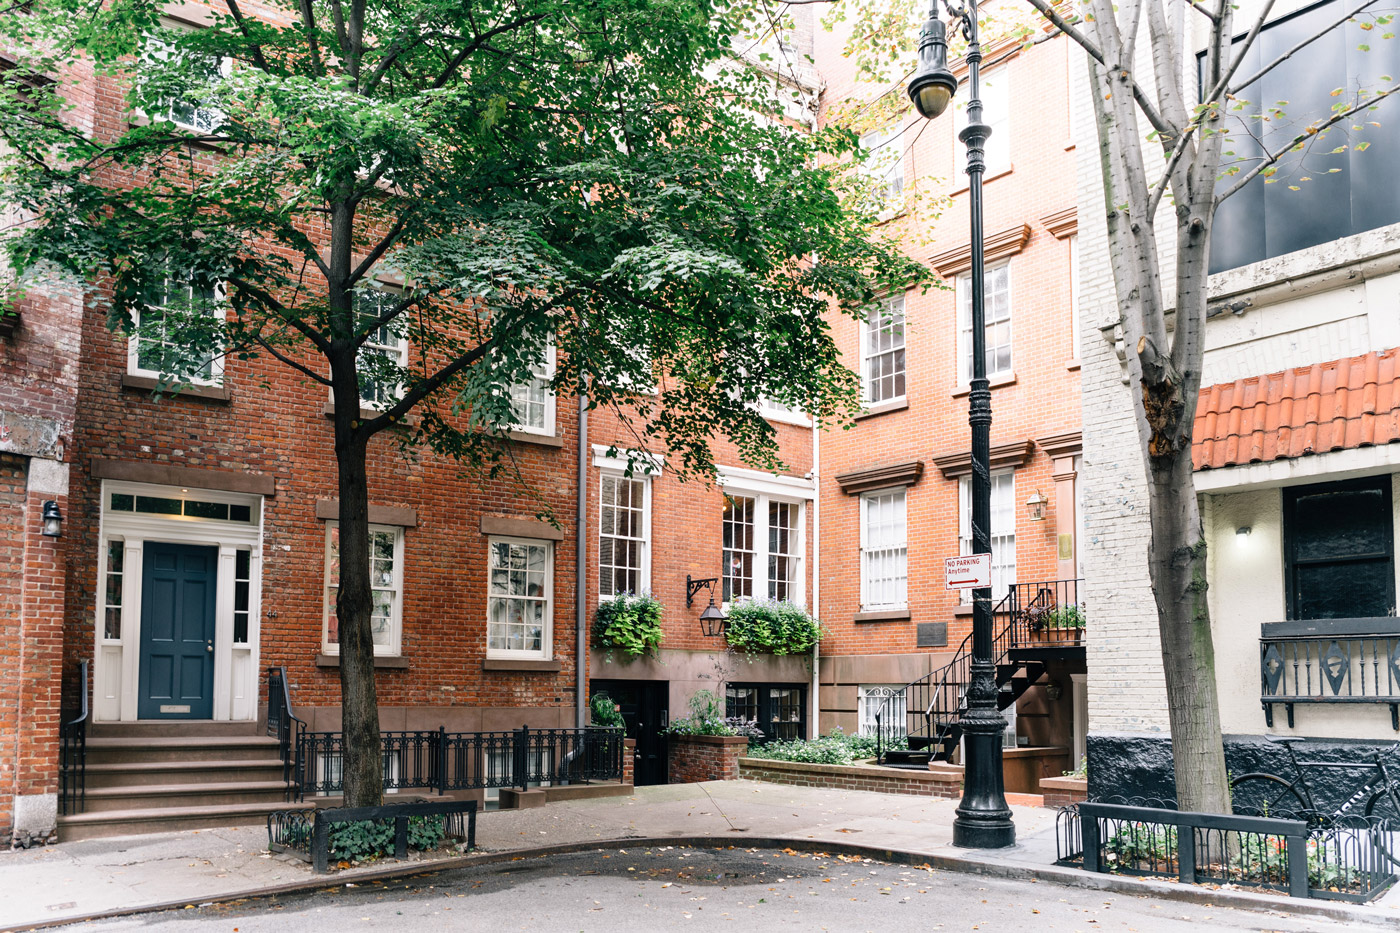 Brick townhouses on tree-lined streets in West Village